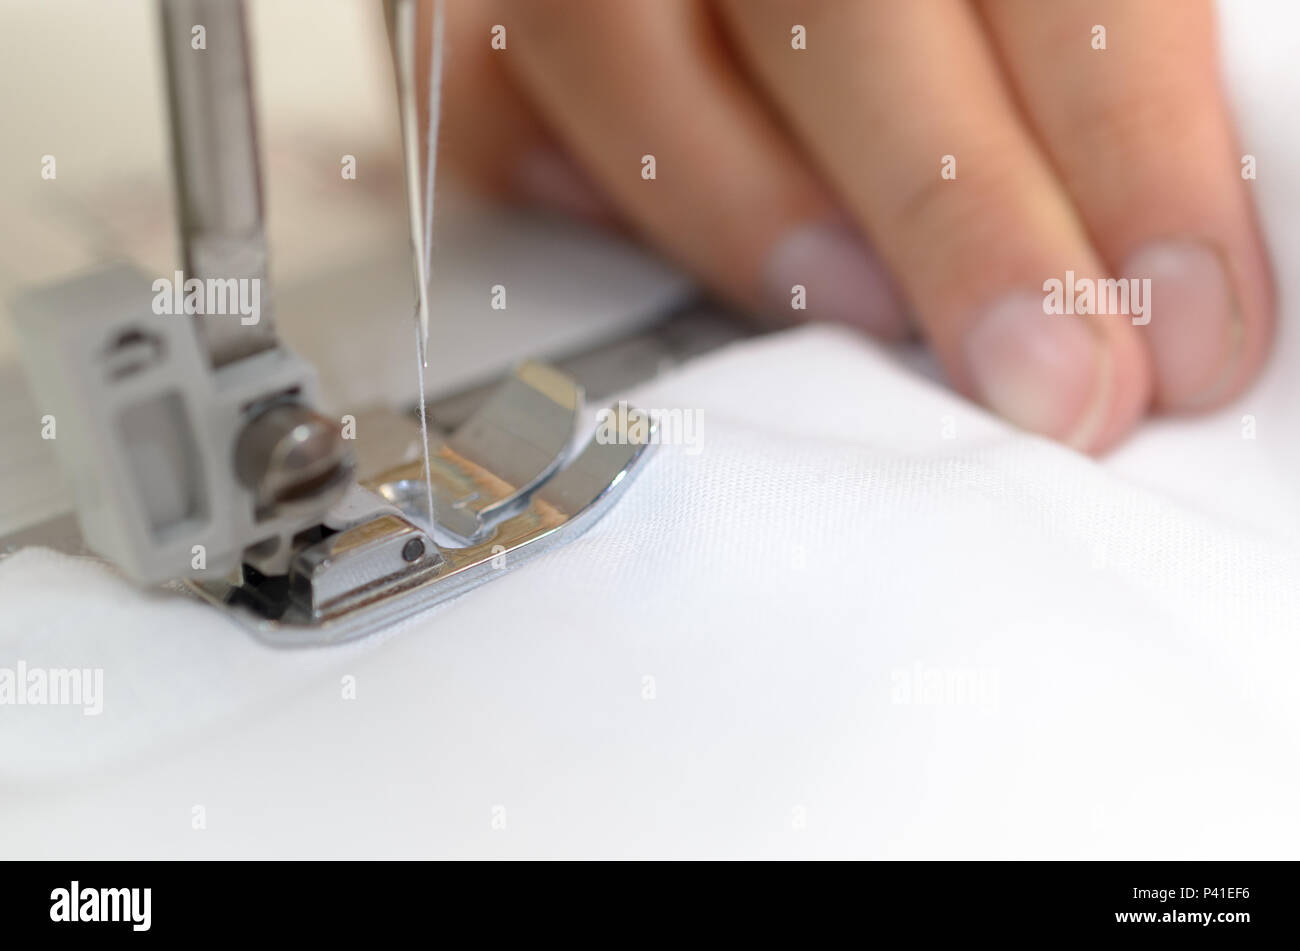 Hands seamstresses with white material behind the sewing machine - Stock Image